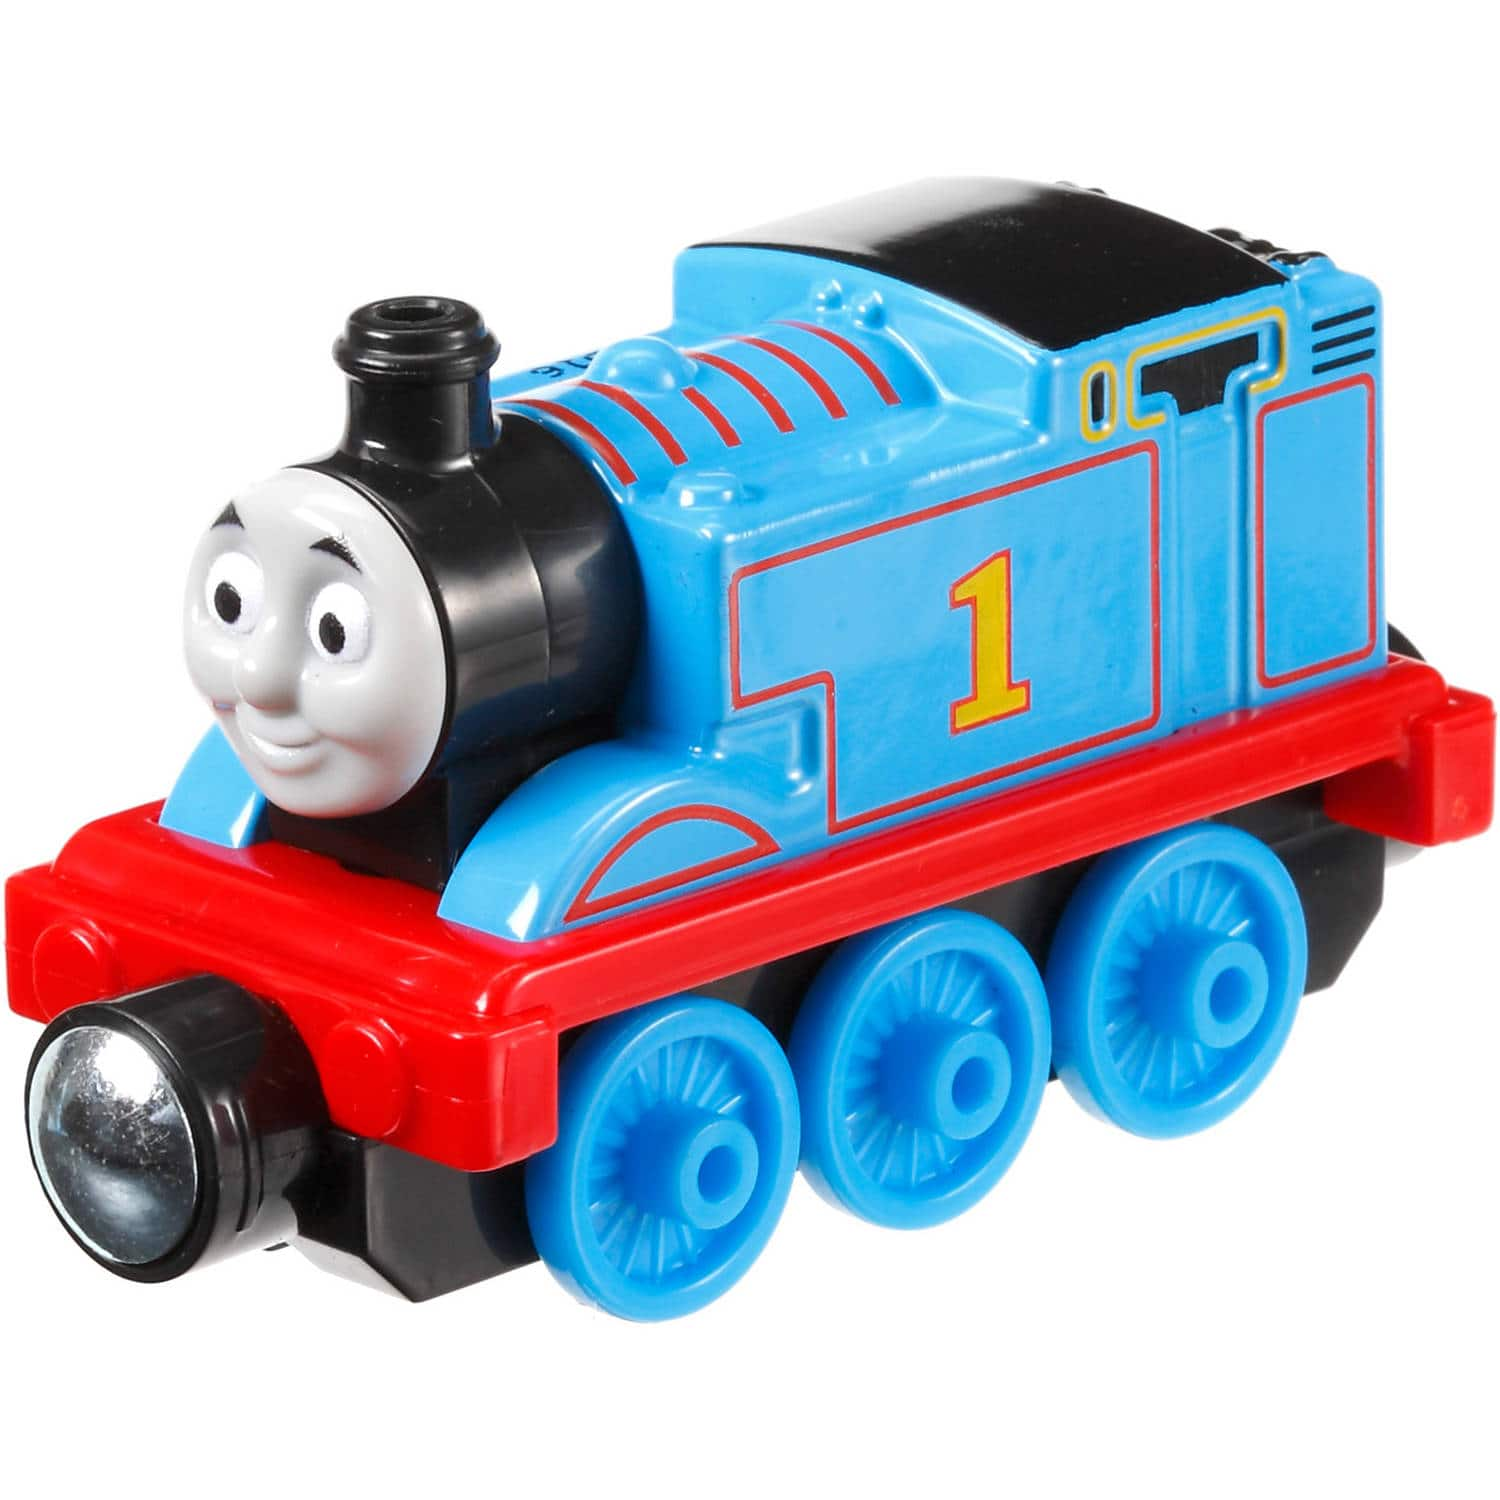 Thomas & Friends Take-N-Play Small Thomas Vehicle Engine  $2.75 + Free Shipping